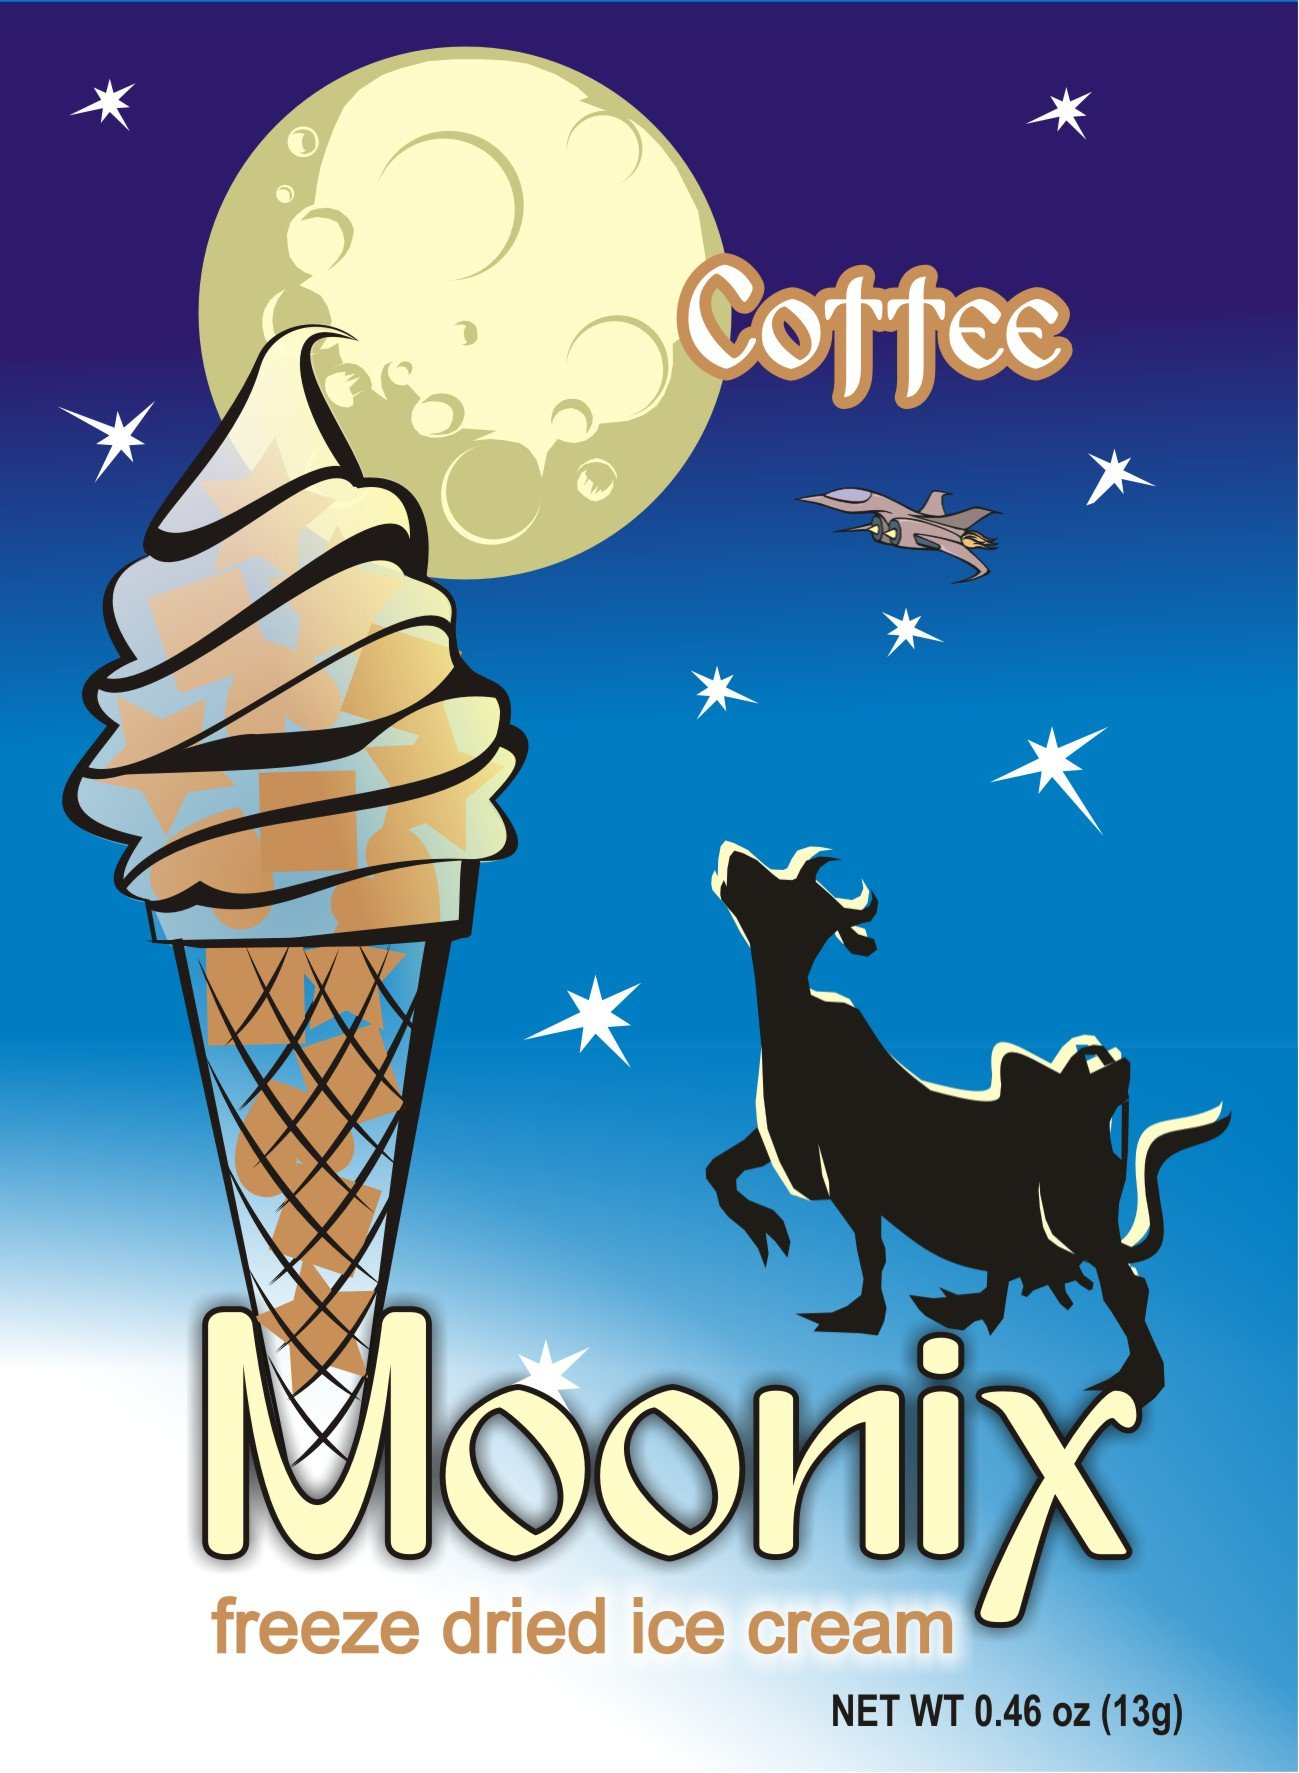 Moonix Freeze Dried Ice Cream (Coffee)